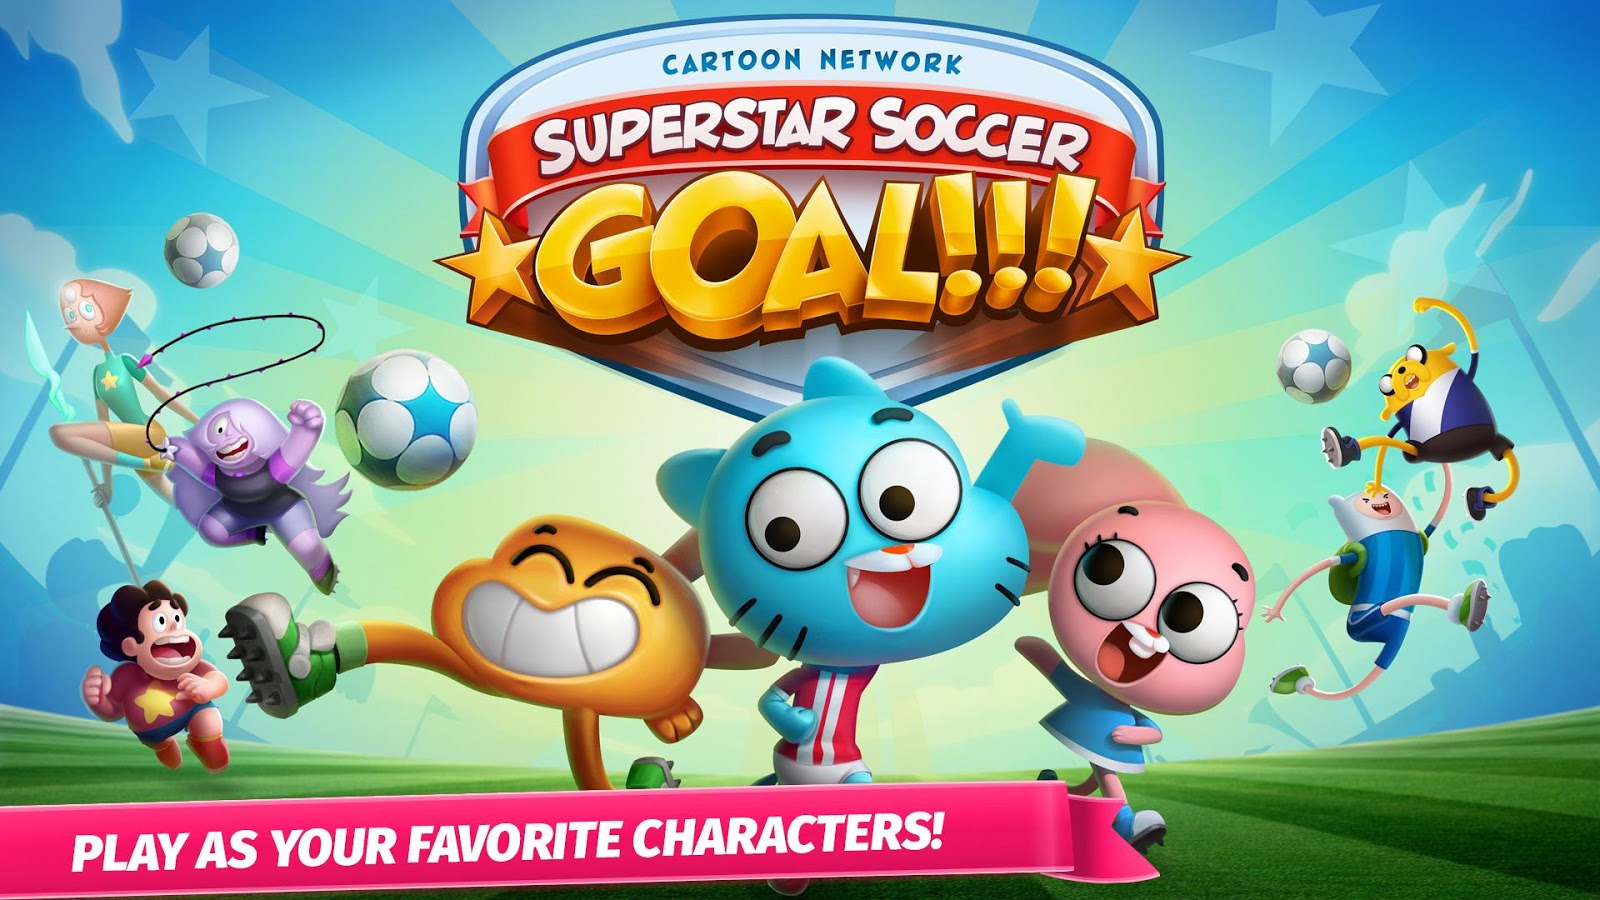 CN Superstar Soccer: Goal!!! Screenshot 10